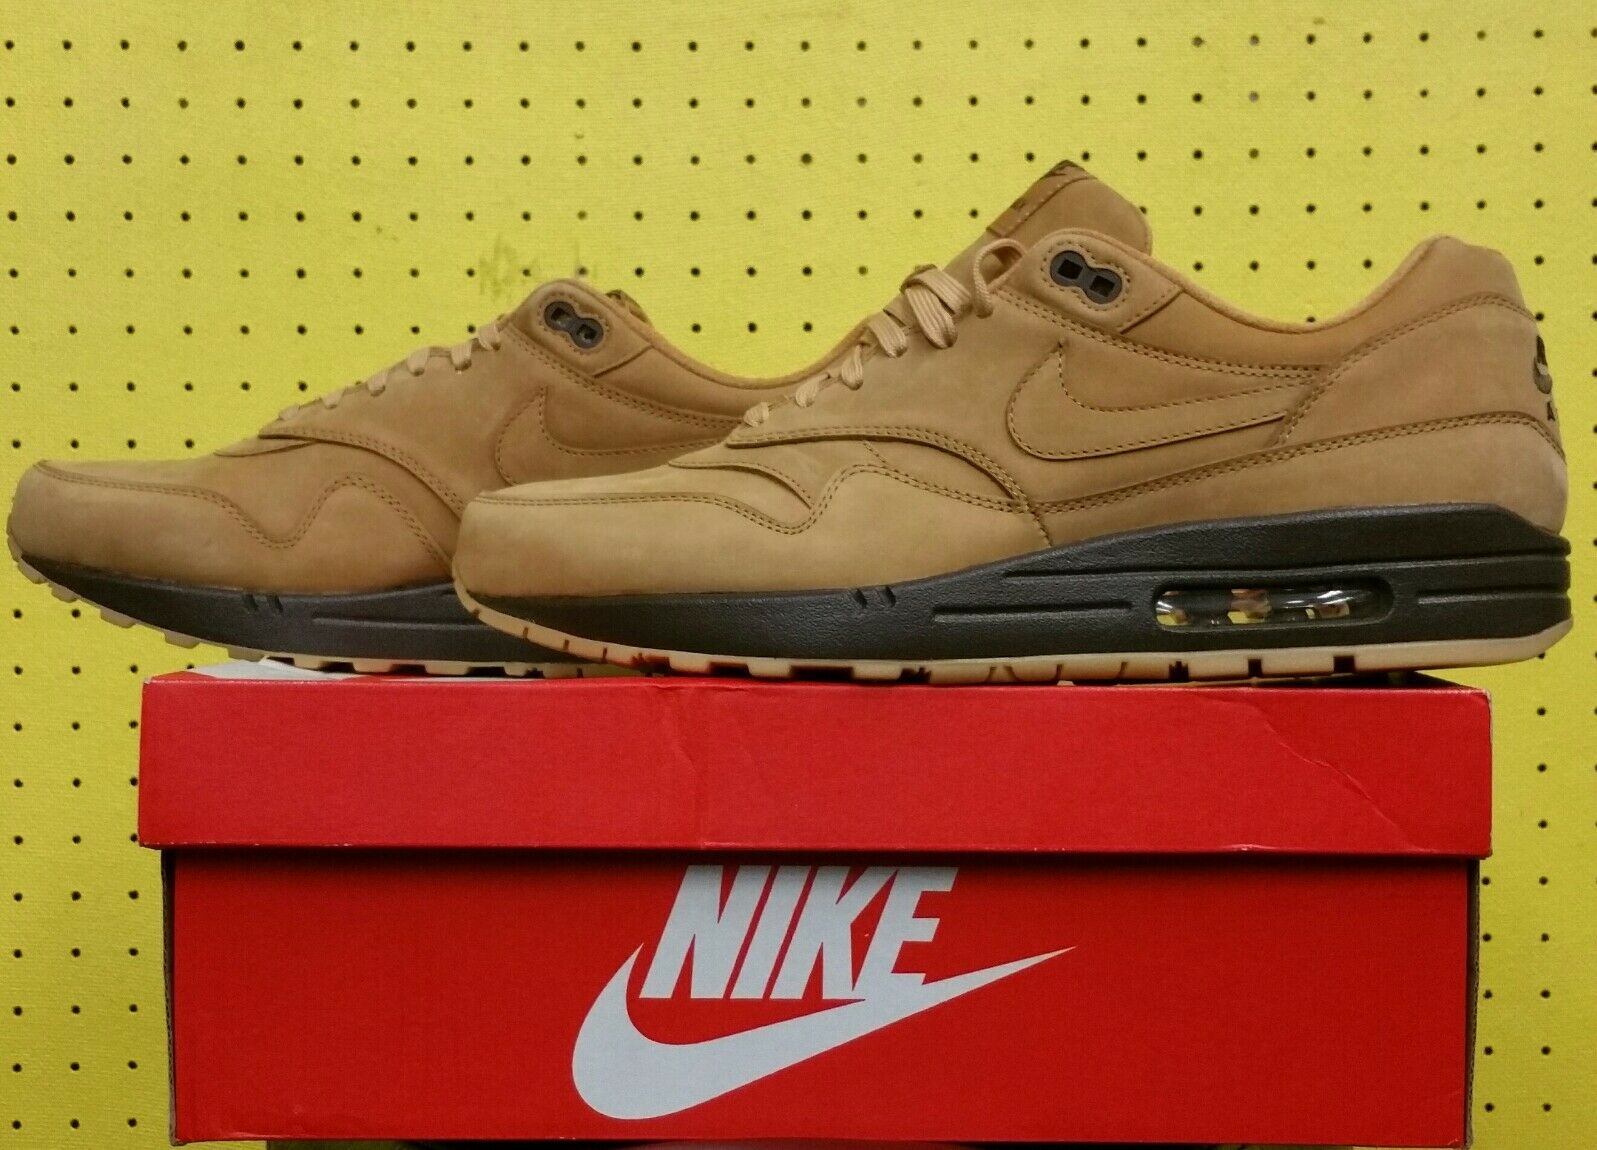 New Men's Nike Air Max 1 QS Shoes Sz 11.5 Flax Wheat Baroque Brown 704997 200 Special limited time